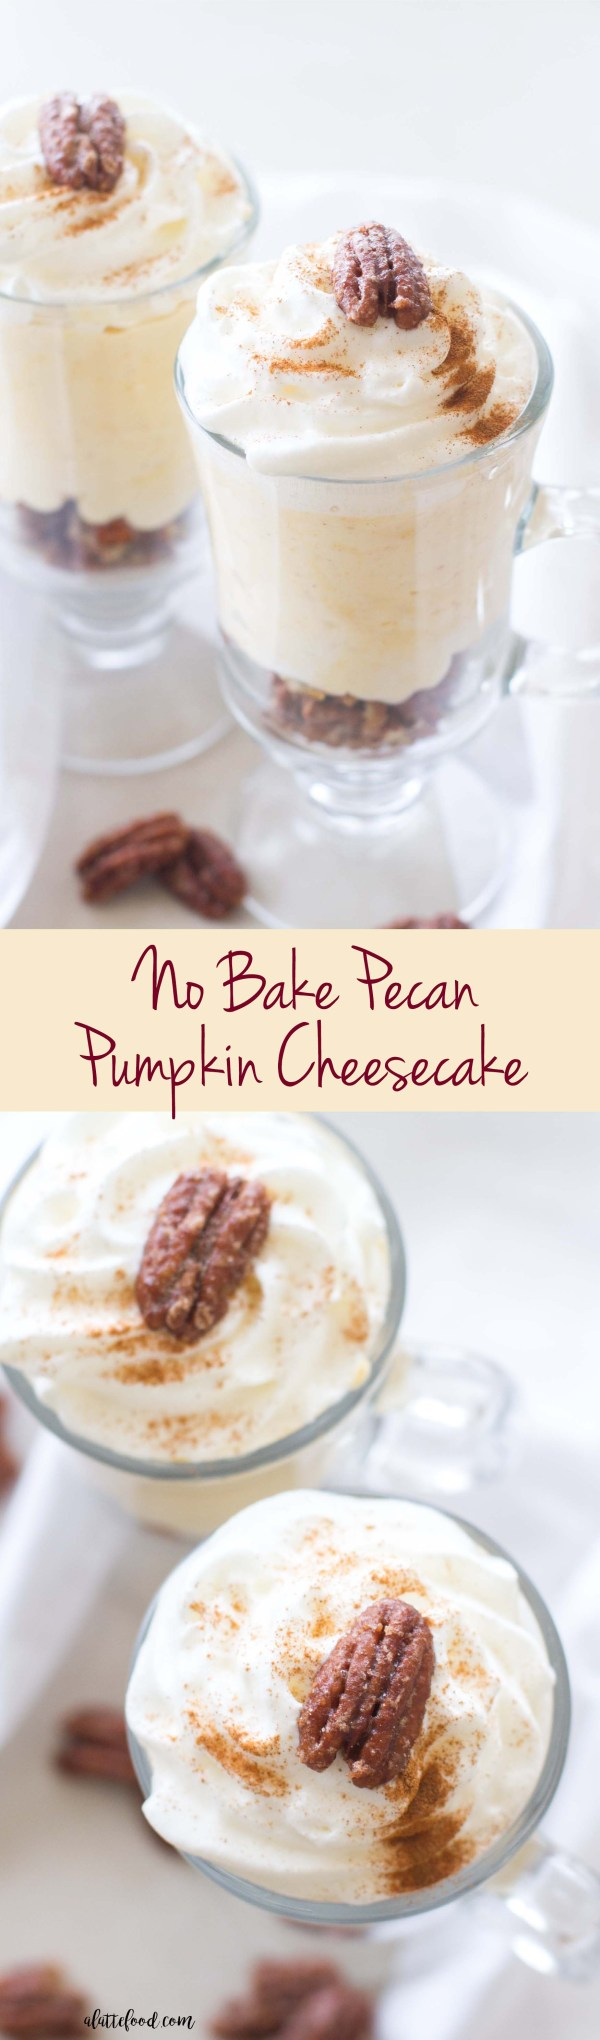 This no bake pecan pumpkin cheesecake is one of the easiest pumpkin recipes! It starts with a salted pecan crust, has a layer of creamy pumpkin cheesecake, and ends with homemade whipped cream!